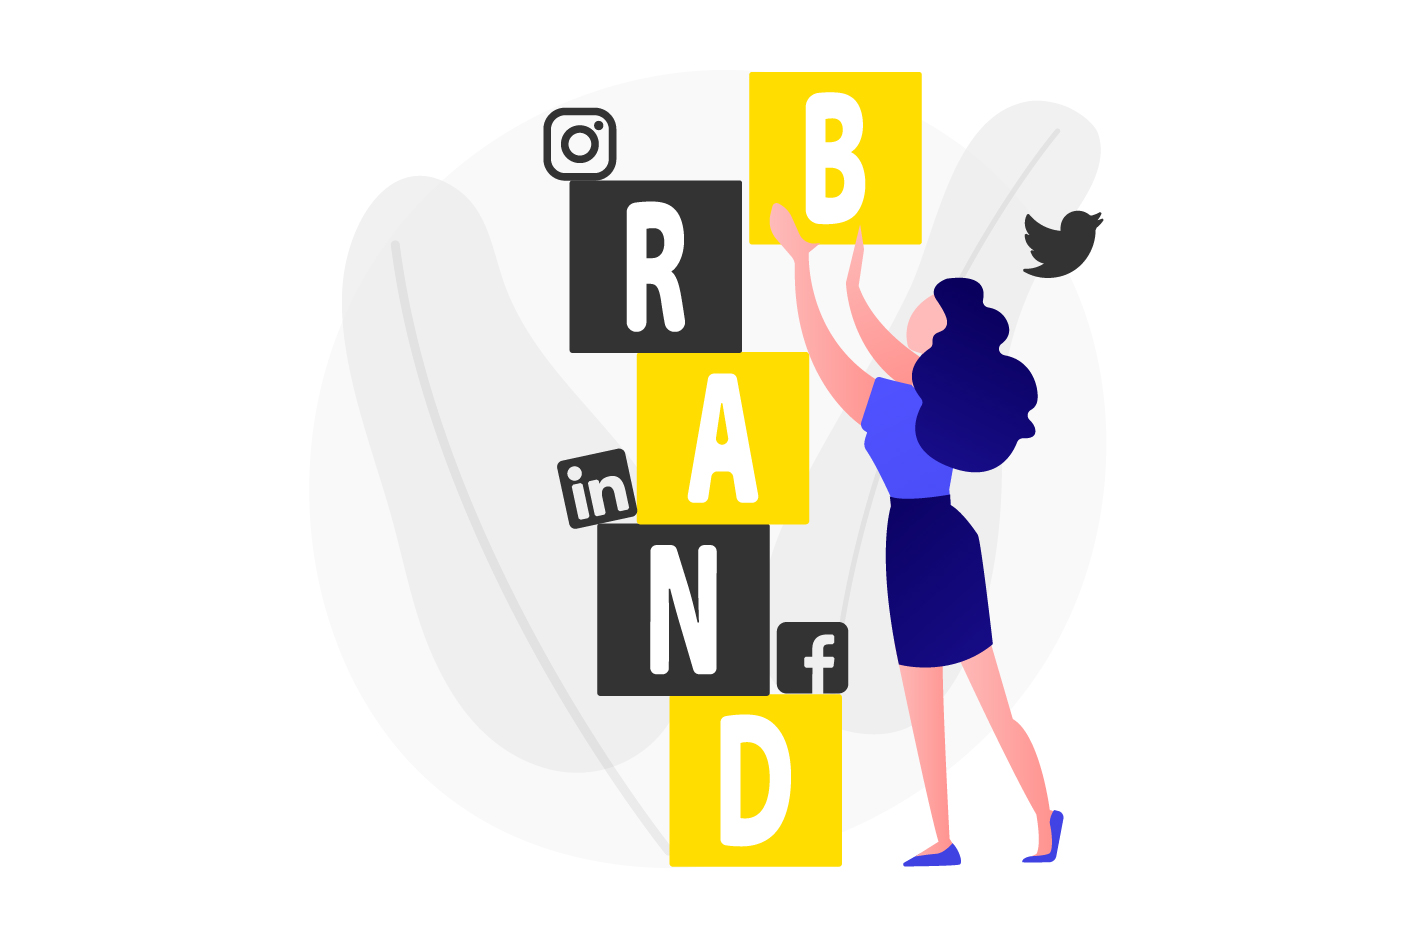 Building A Brand On Social - The Art Of Thumb Stopping Content